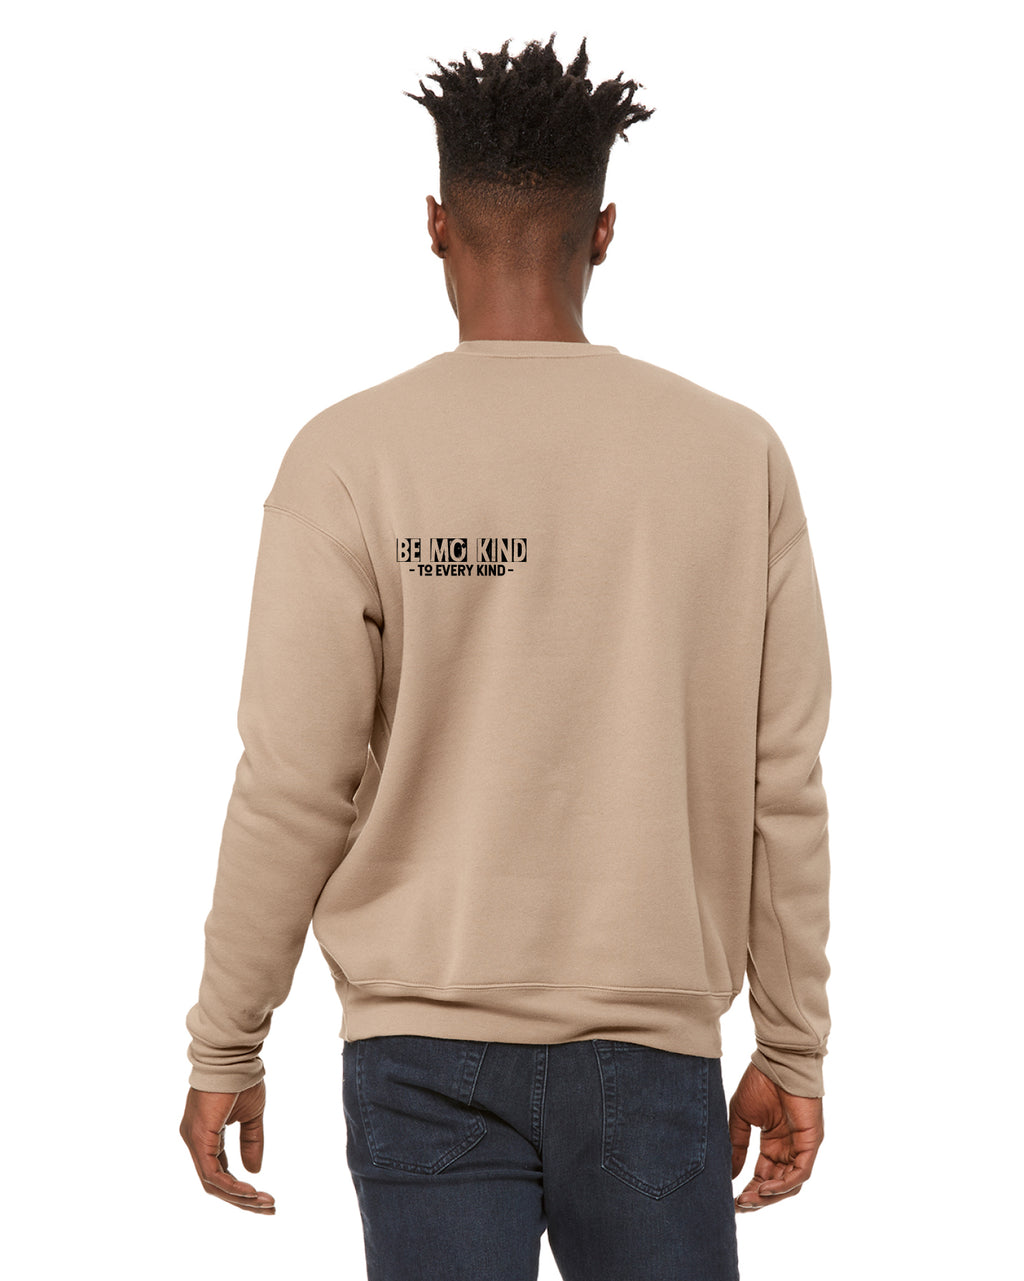 Every Kind Crewneck Sweatshirt